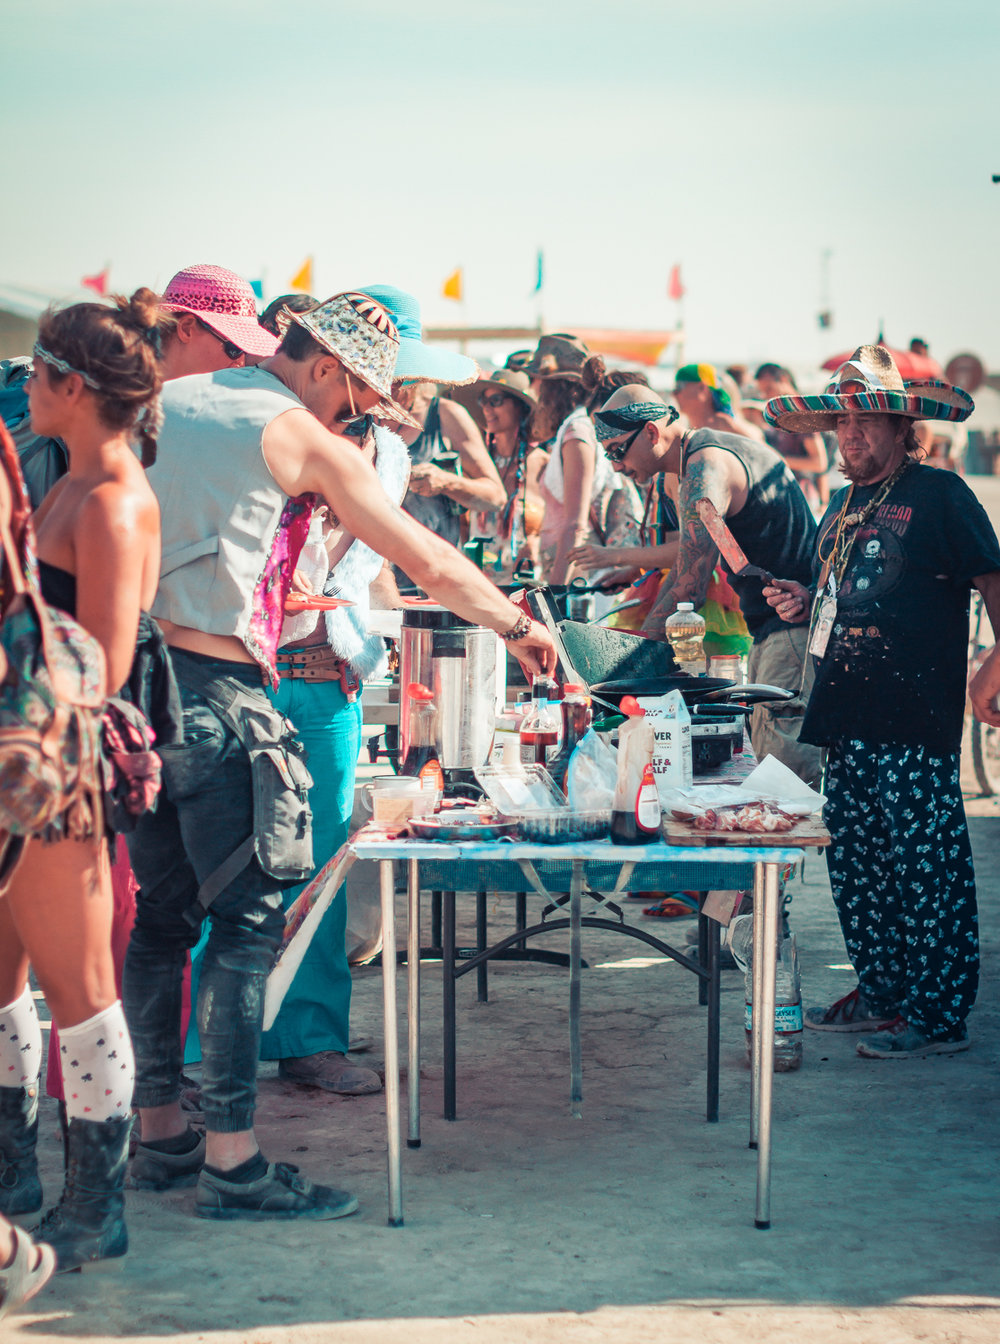 20160830-Burning man-231.jpg